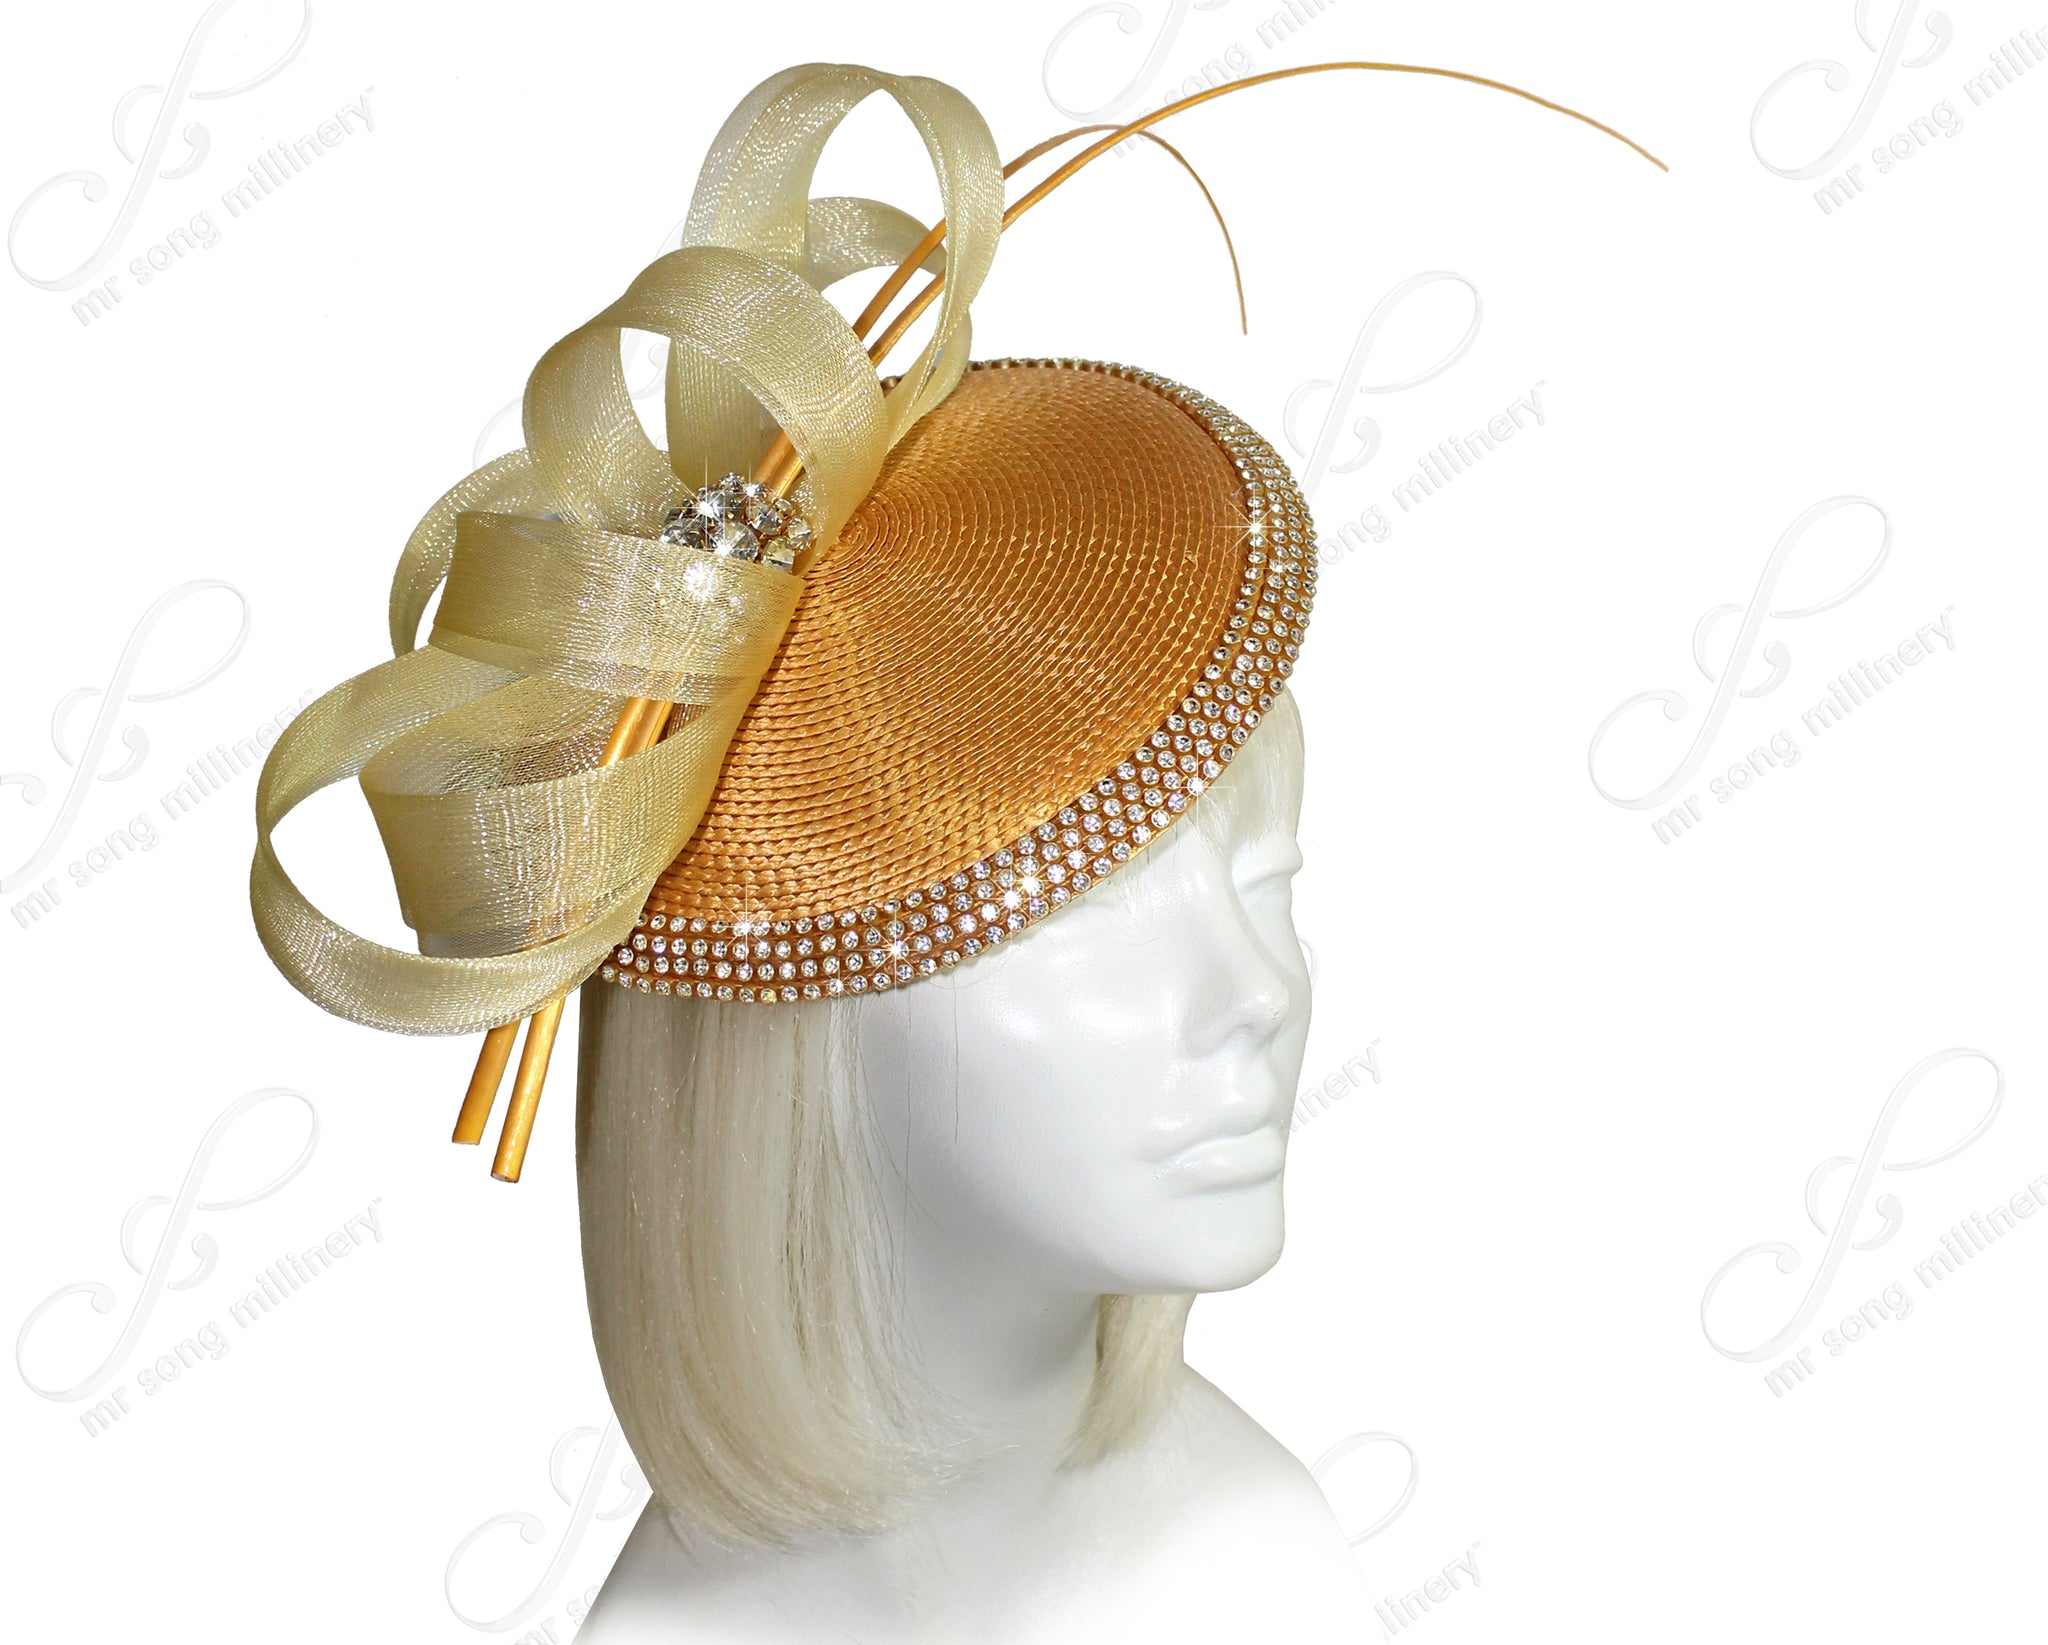 Mr. Song Millinery Kentucky Derby Profile Dish Fascinator Headband - 2 COLORS